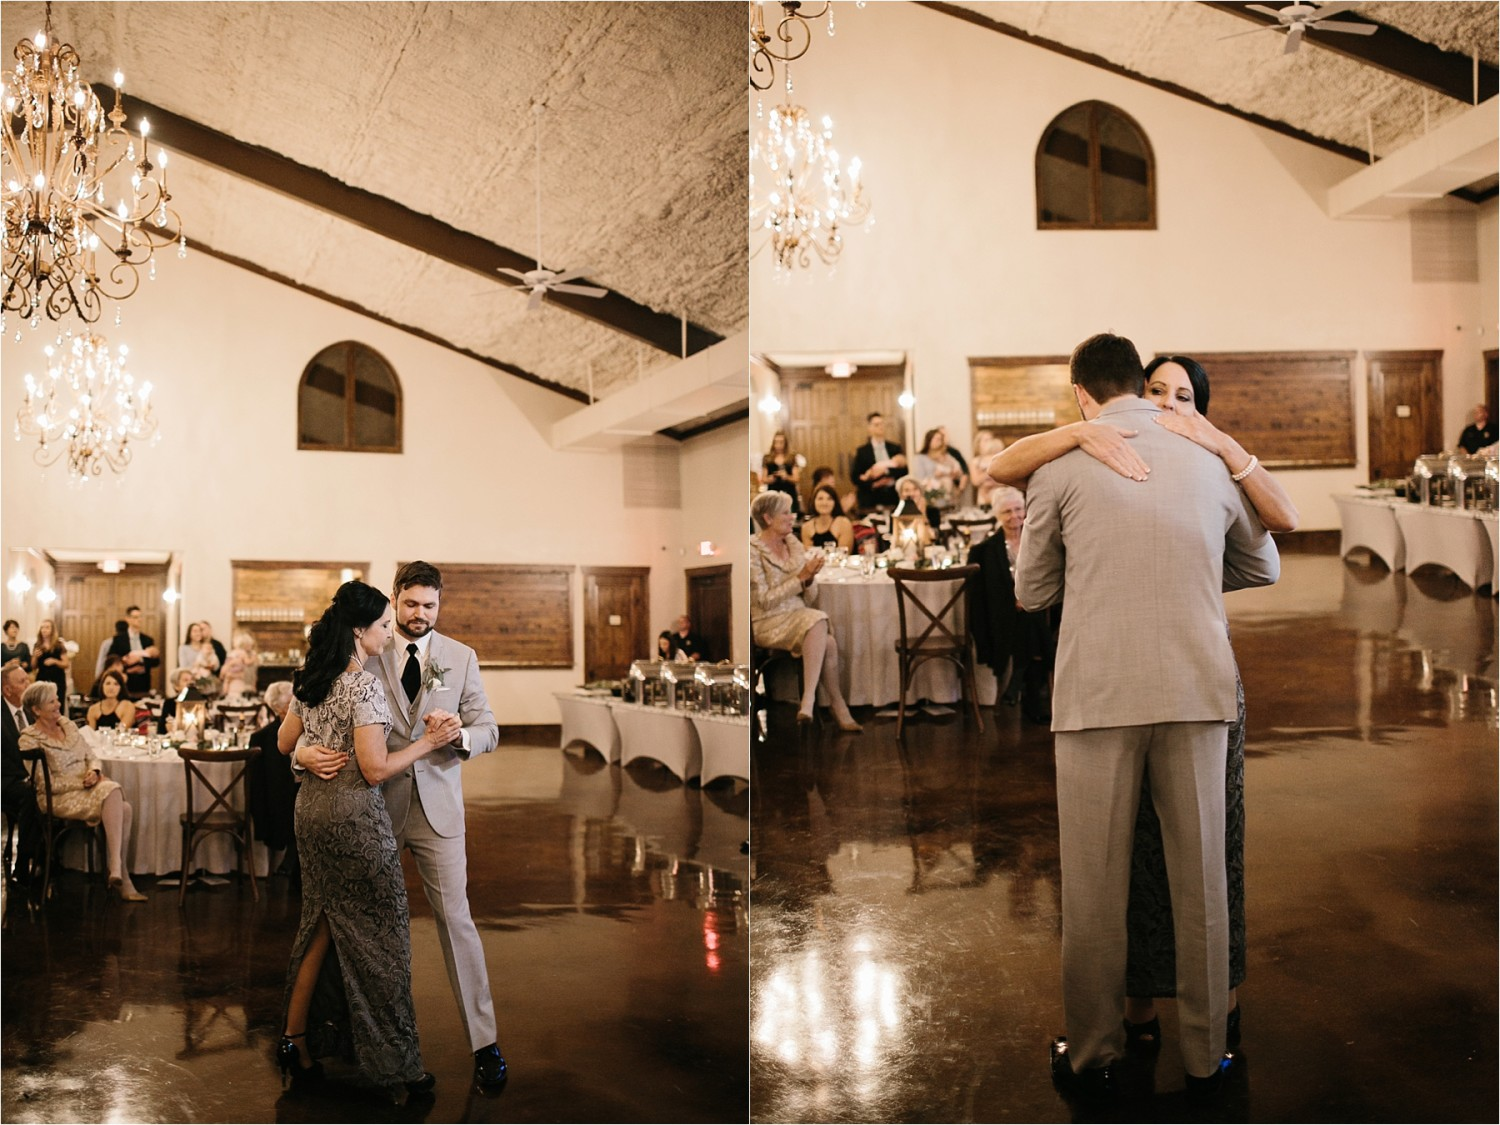 brad-lara-__-a-grey-and-blush-pink-intimate-wedding-at-hidden-waters-event-center-in-waxahachie-tx-by-north-texas-wedding-photographer-rachel-meagan-photography-_-088